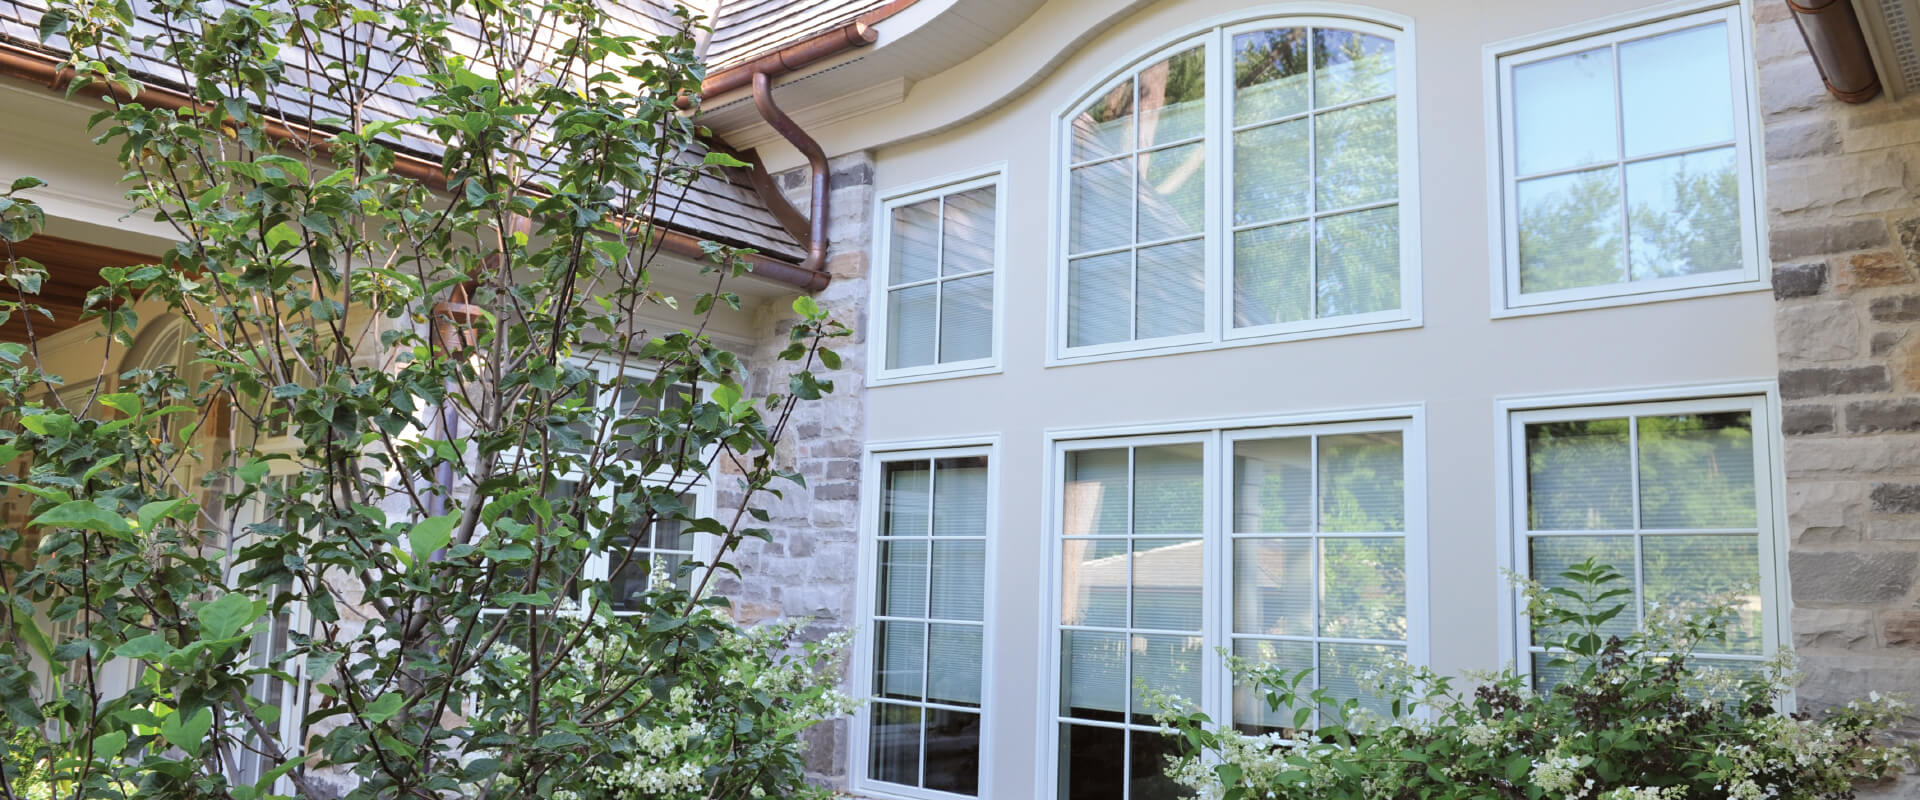 French casement windows photos houzz - Heritage Push Out Casements Exterior